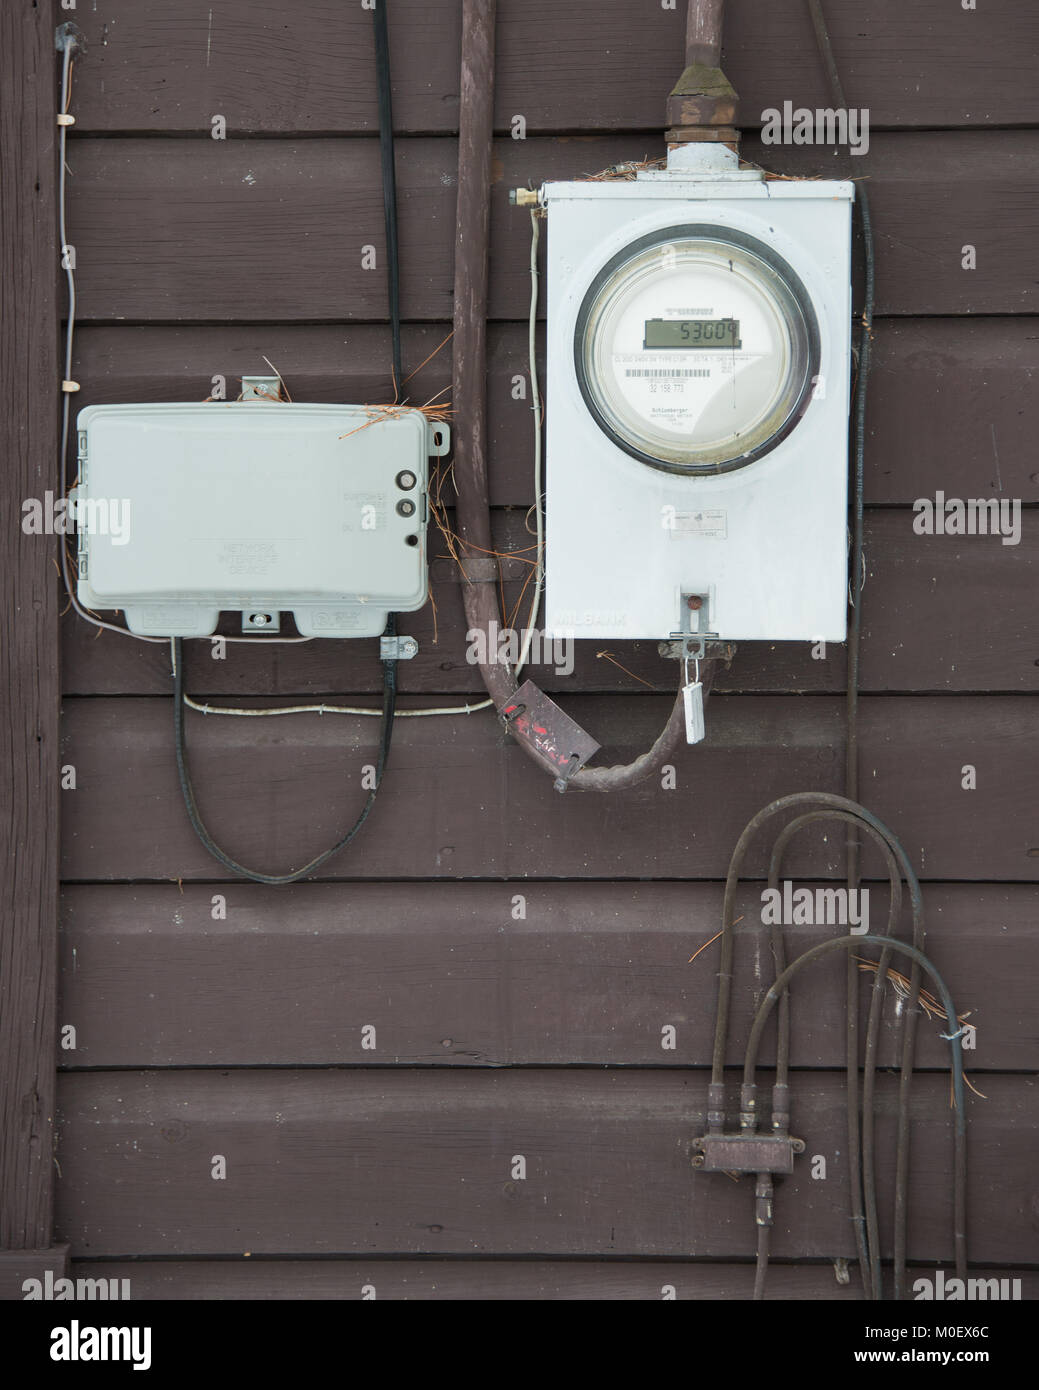 Electric Meter Stock Photos & Electric Meter Stock Images